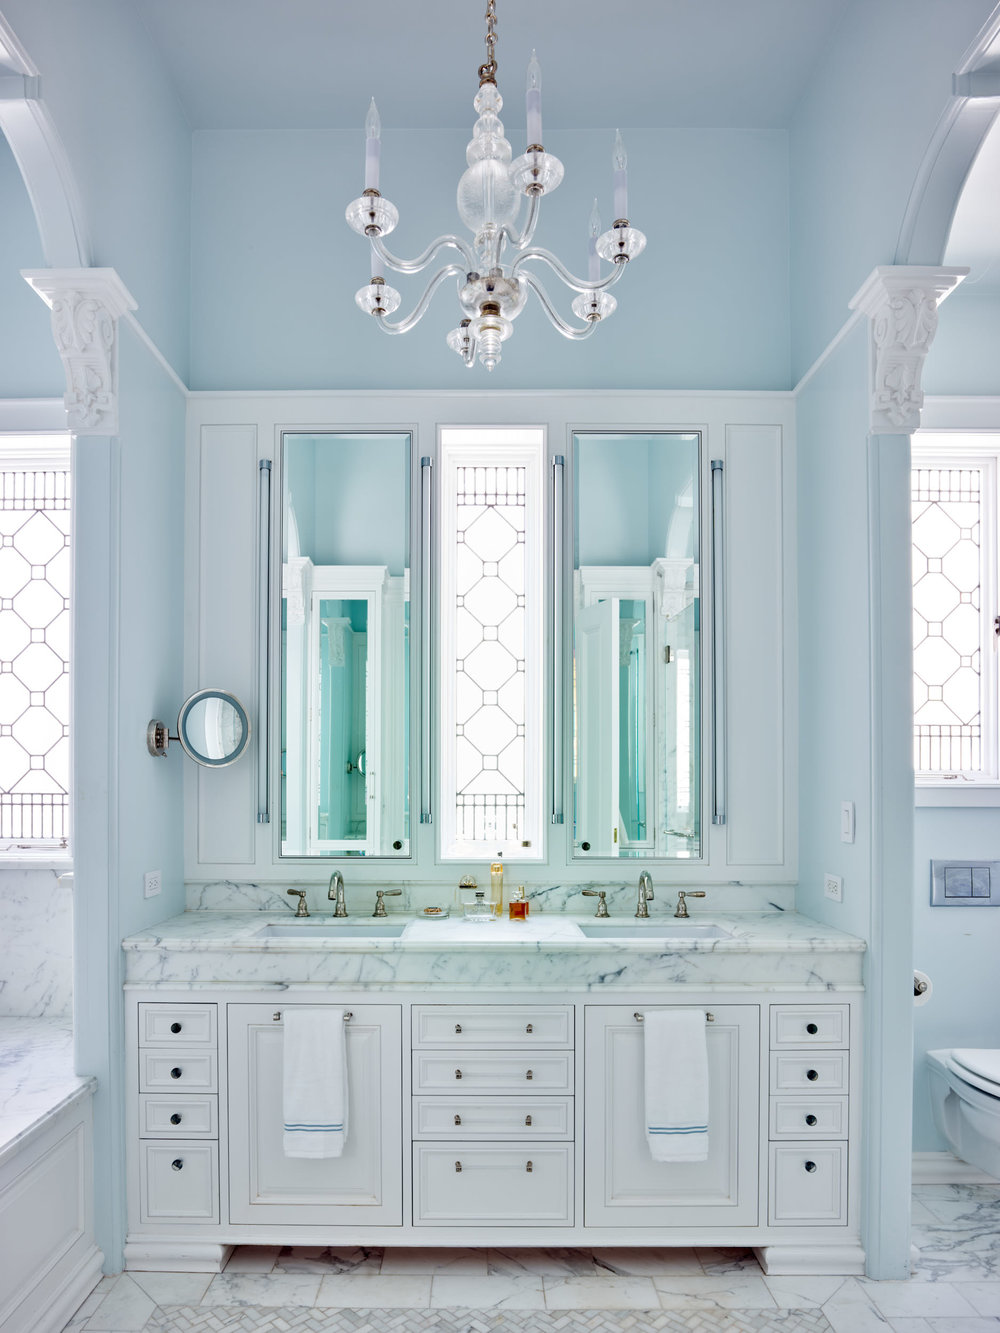 The restfully symmetrical new master bath featuring stained glass windows. Renovated historical house in San Francisco. Stained glass windows by Victoria Balva